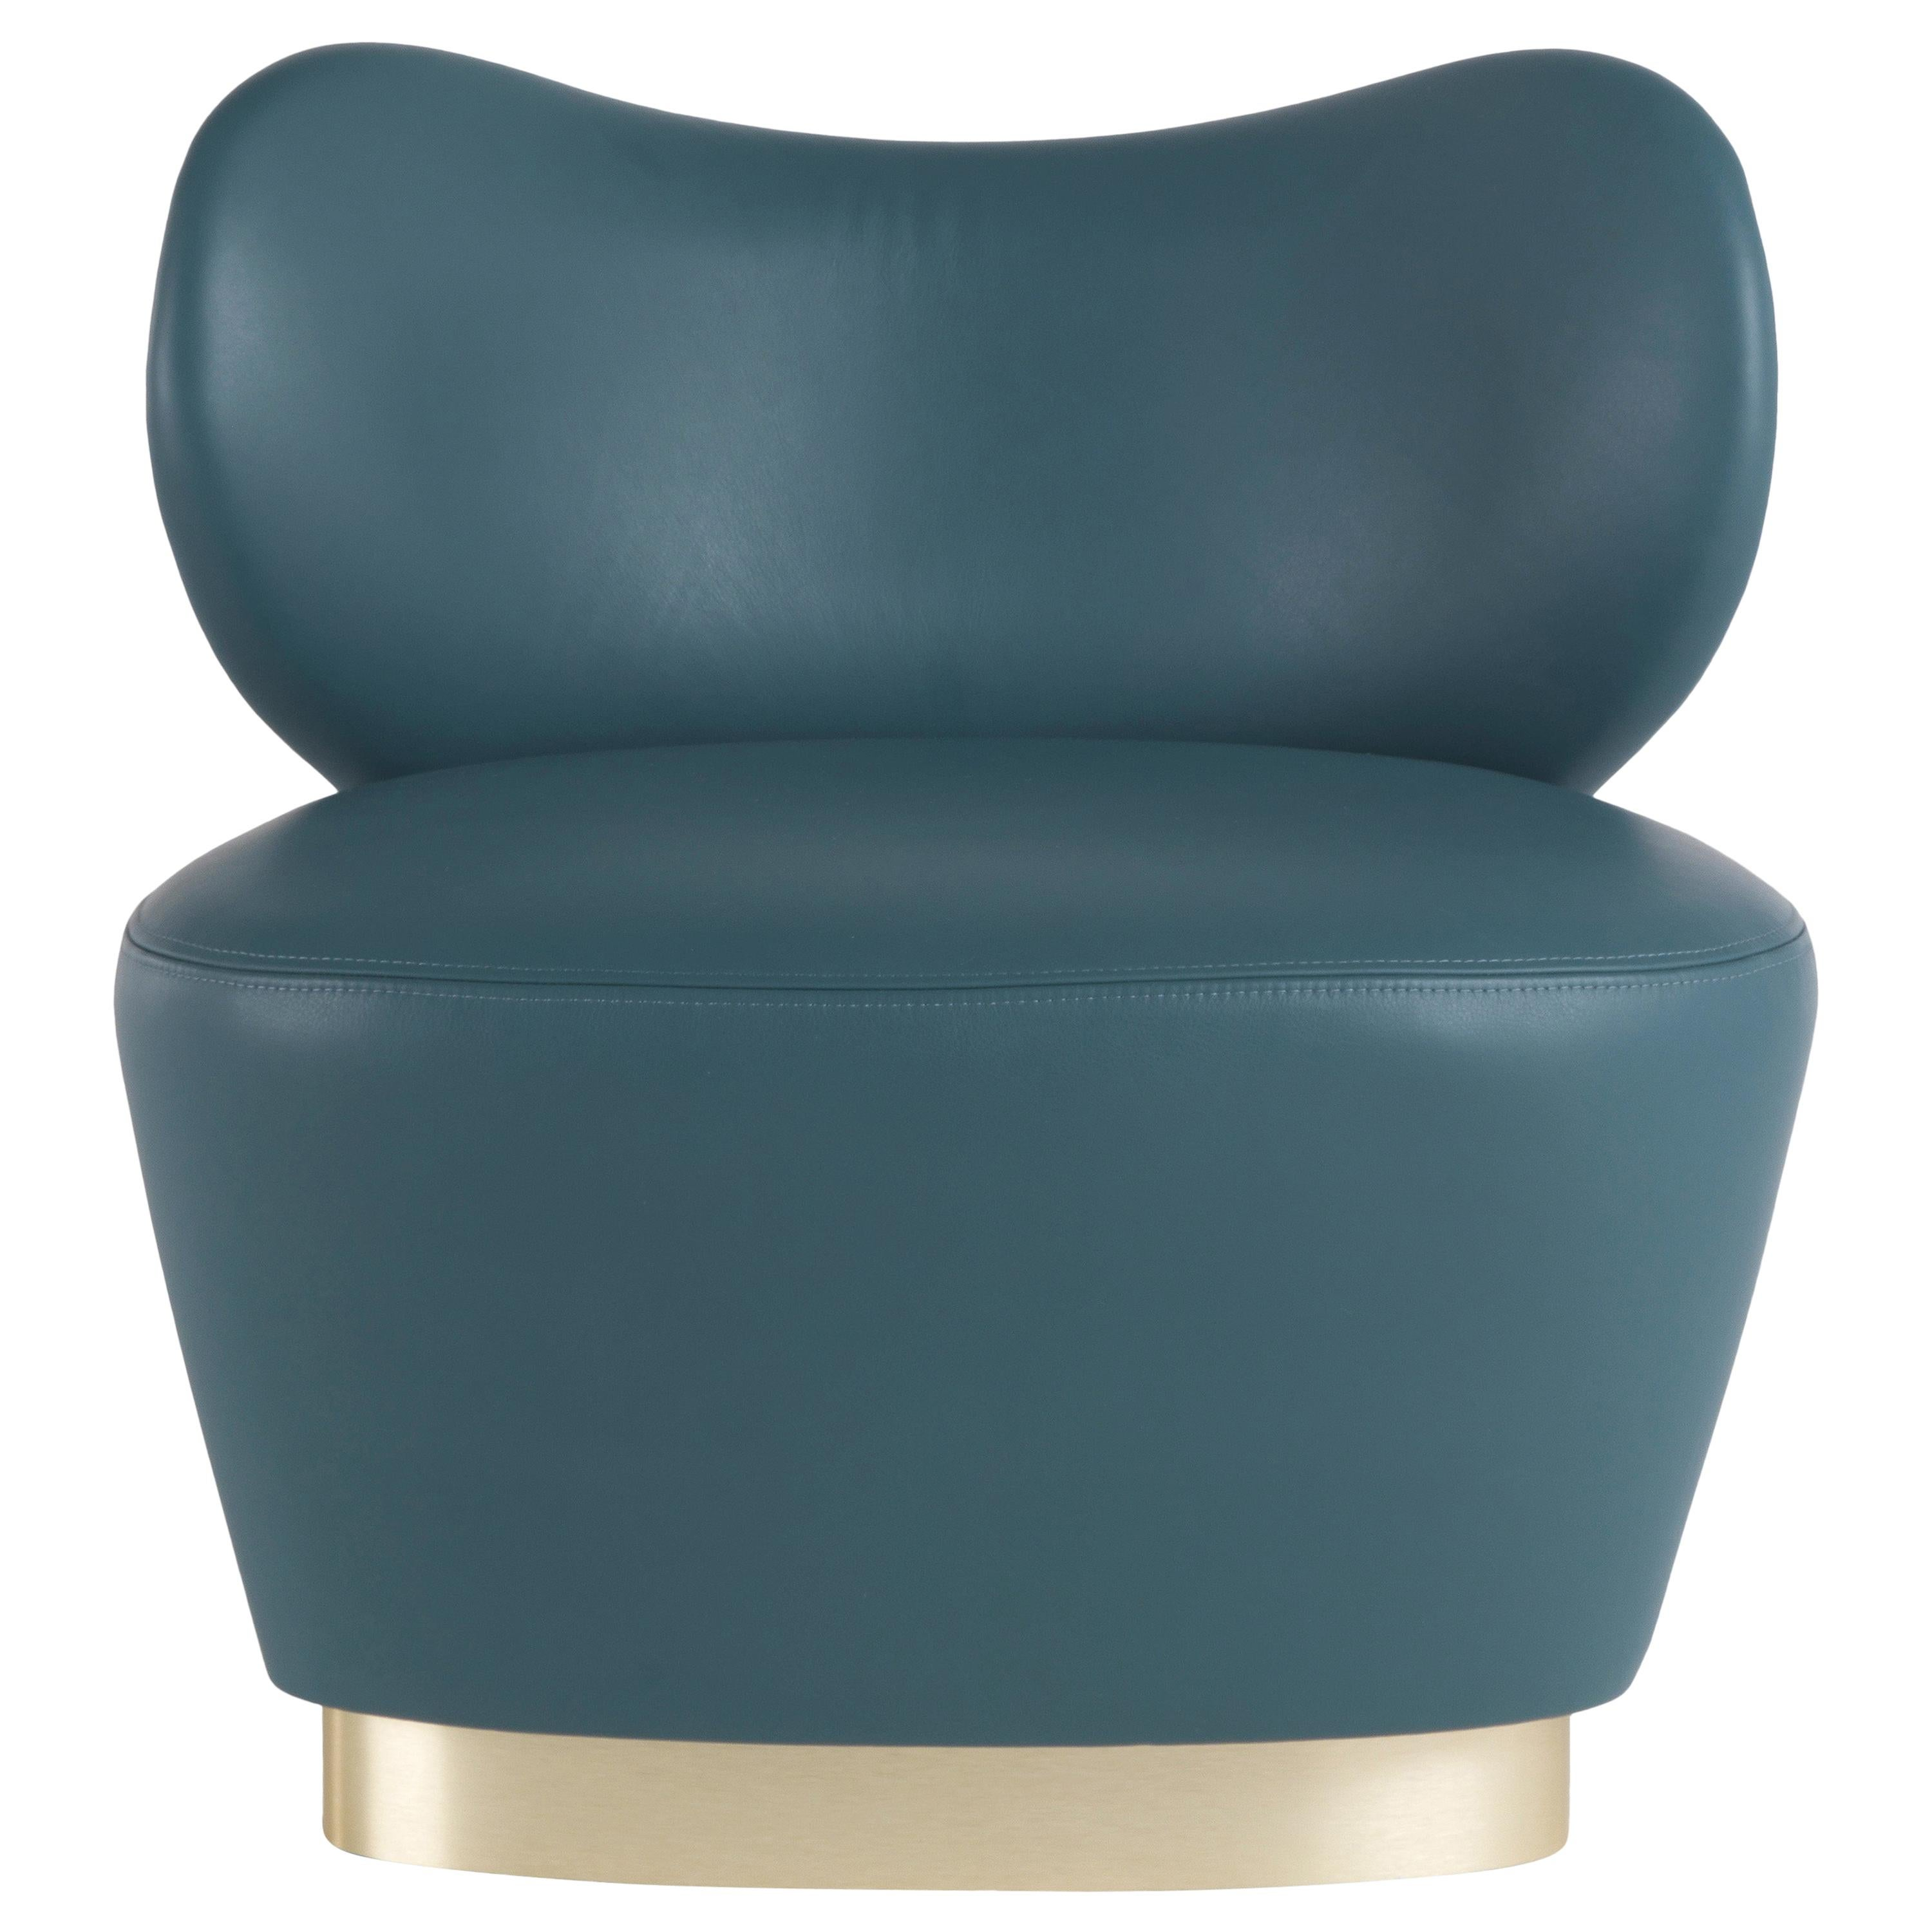 Gianfranco Ferré Home Baglioni Armchair in Leather and Fabric